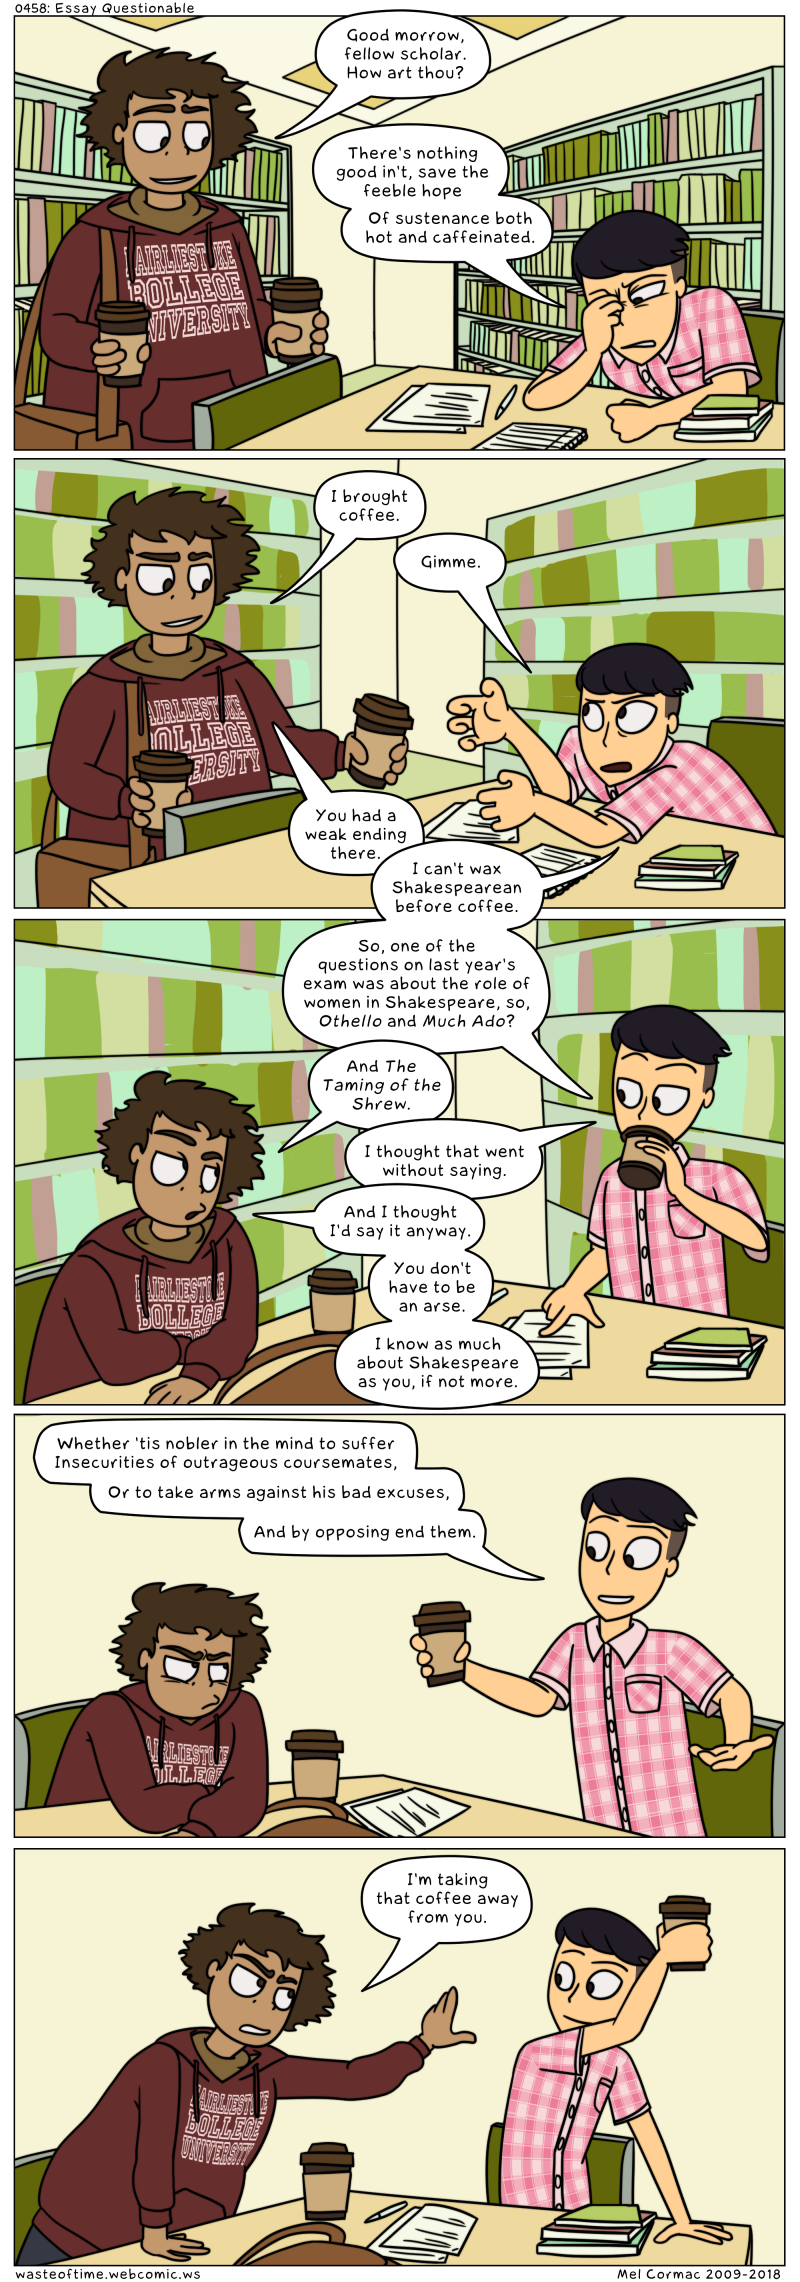 0458: Essay Questionable